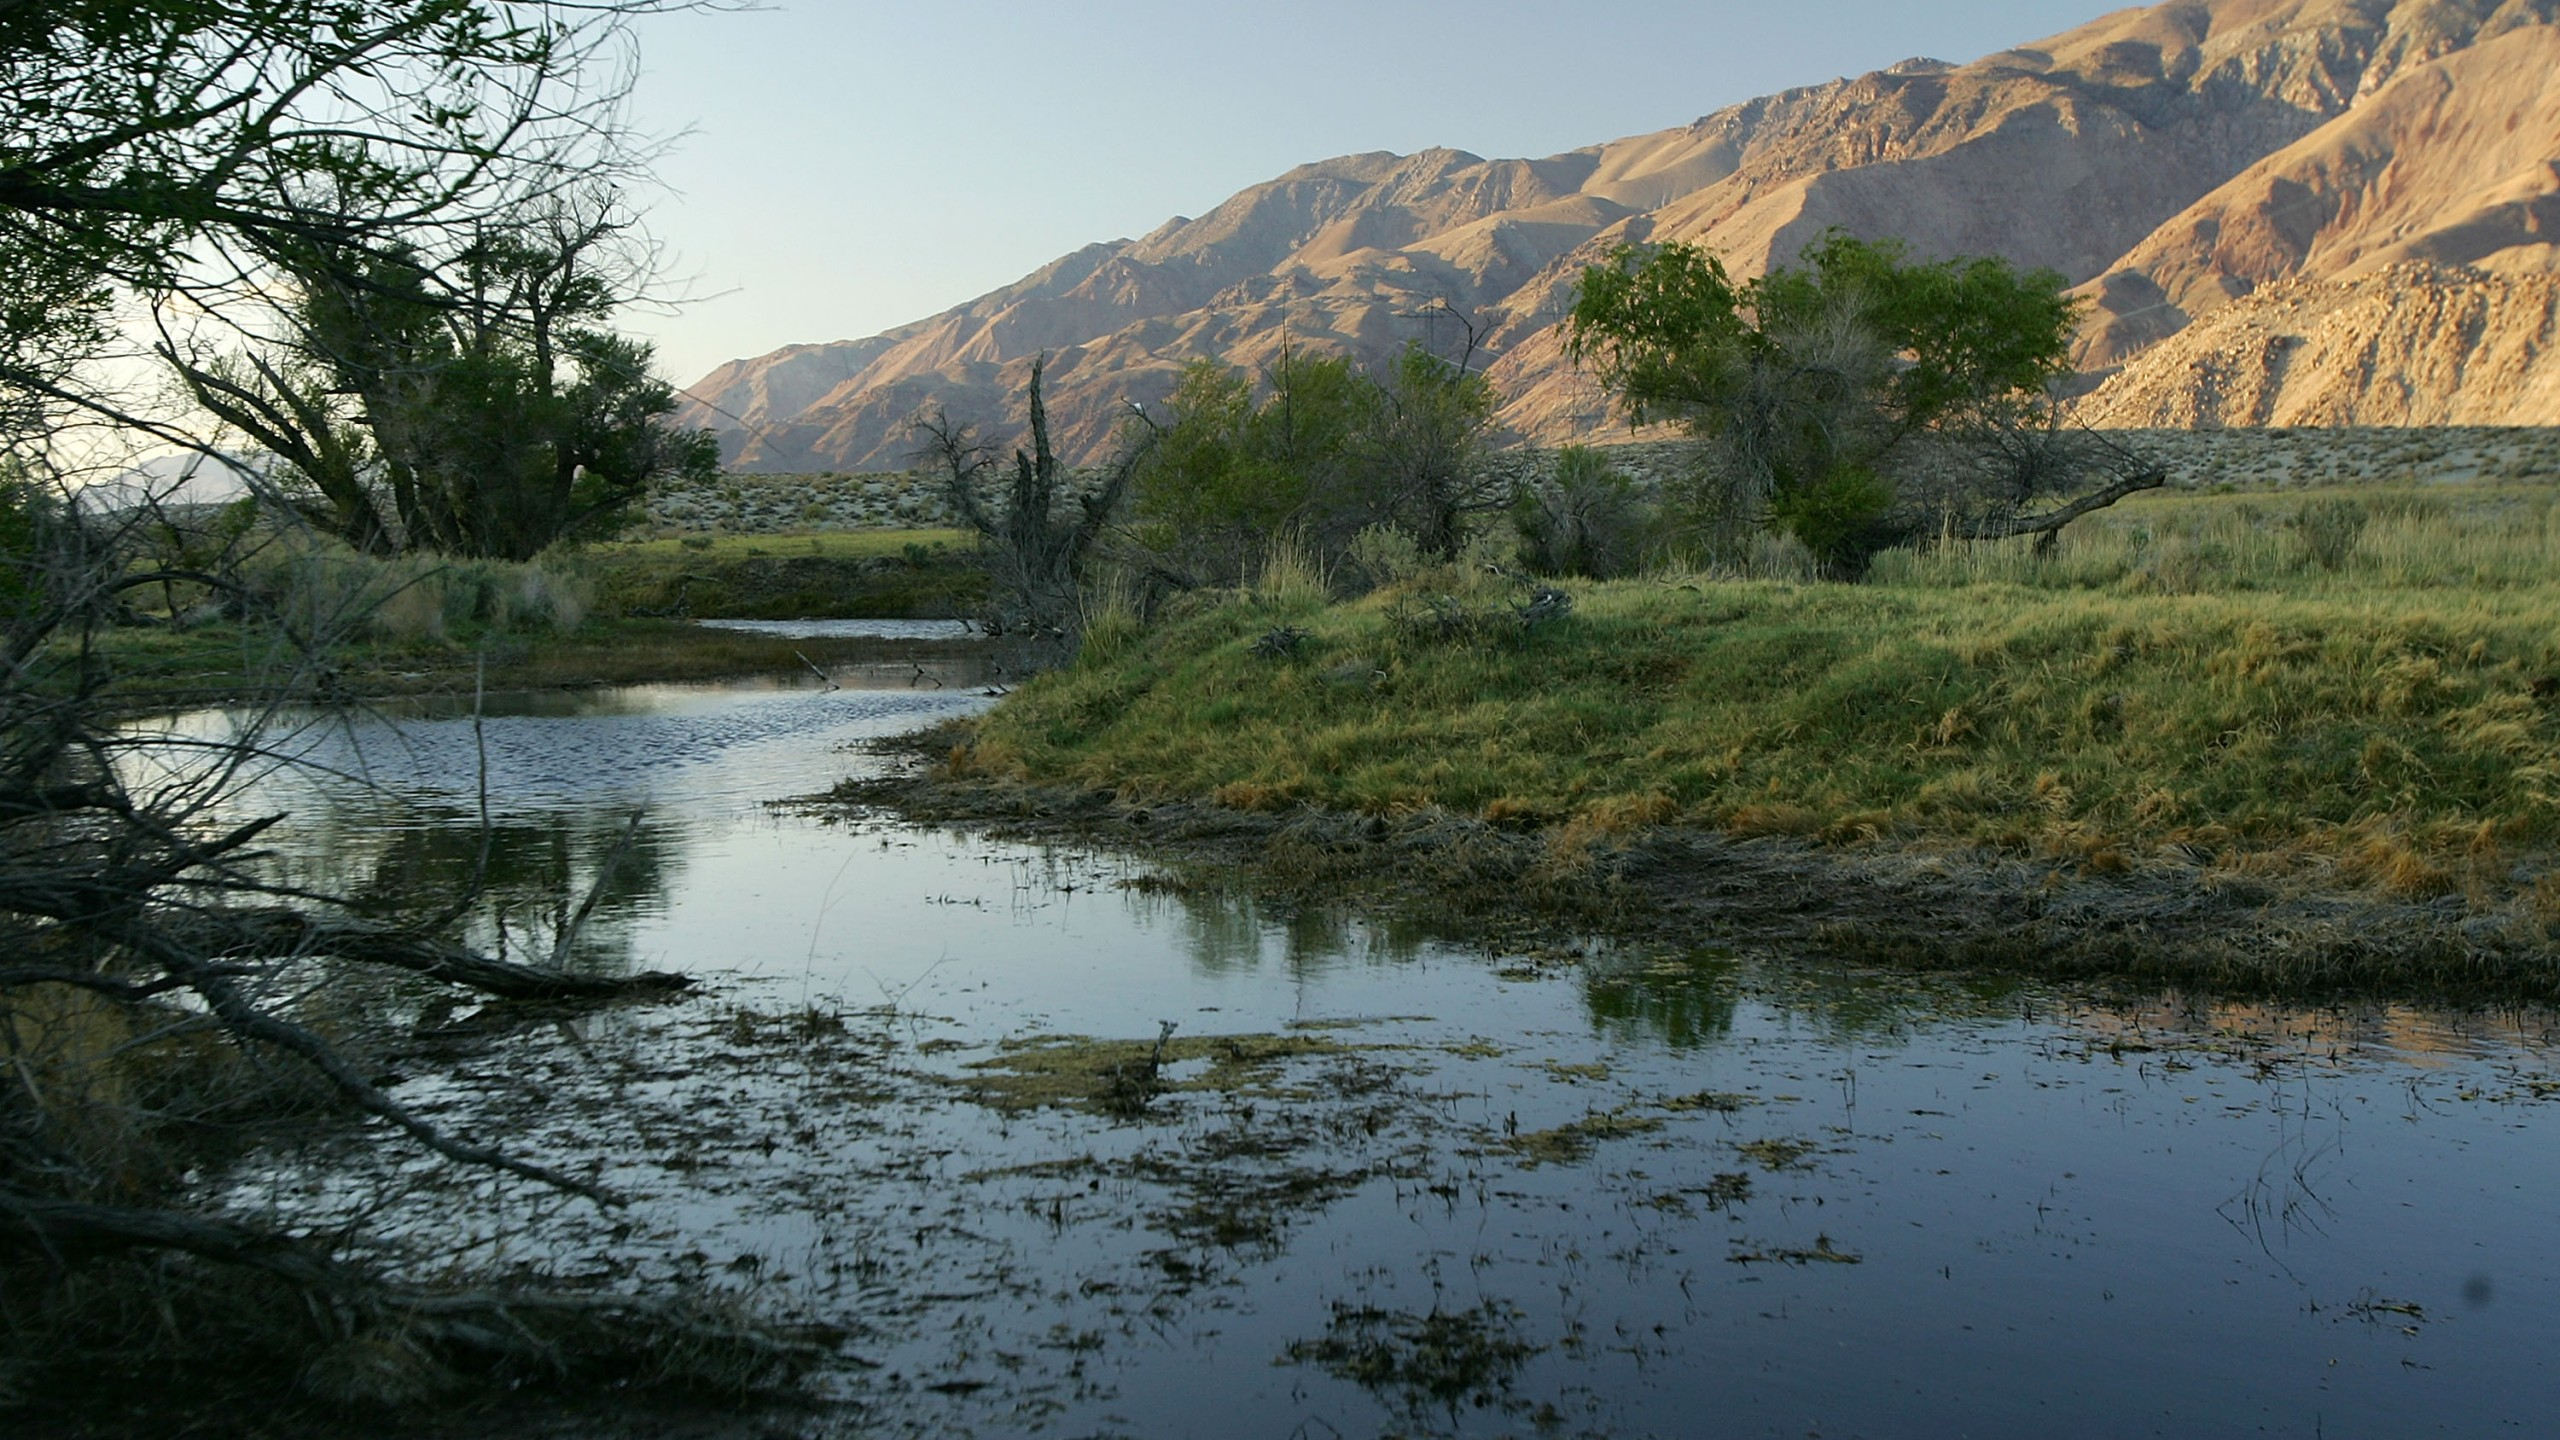 A habitat along the lower Owens River is seen on May 5, 2007, near Lone Pine, California. (Credit: David McNew/Getty Images)